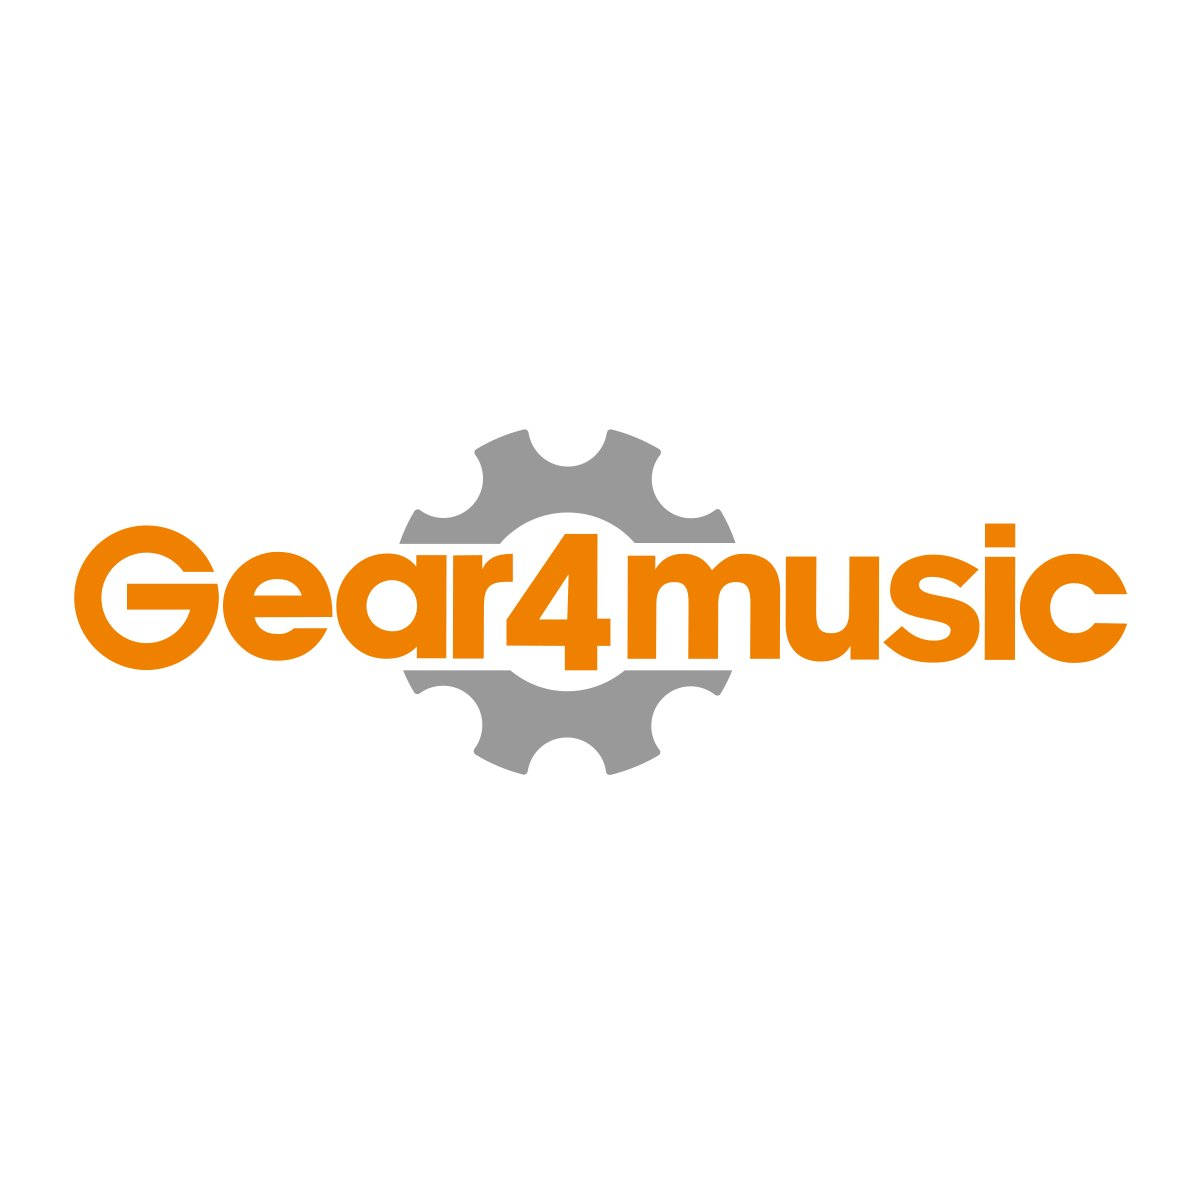 Bugel van Gear4music